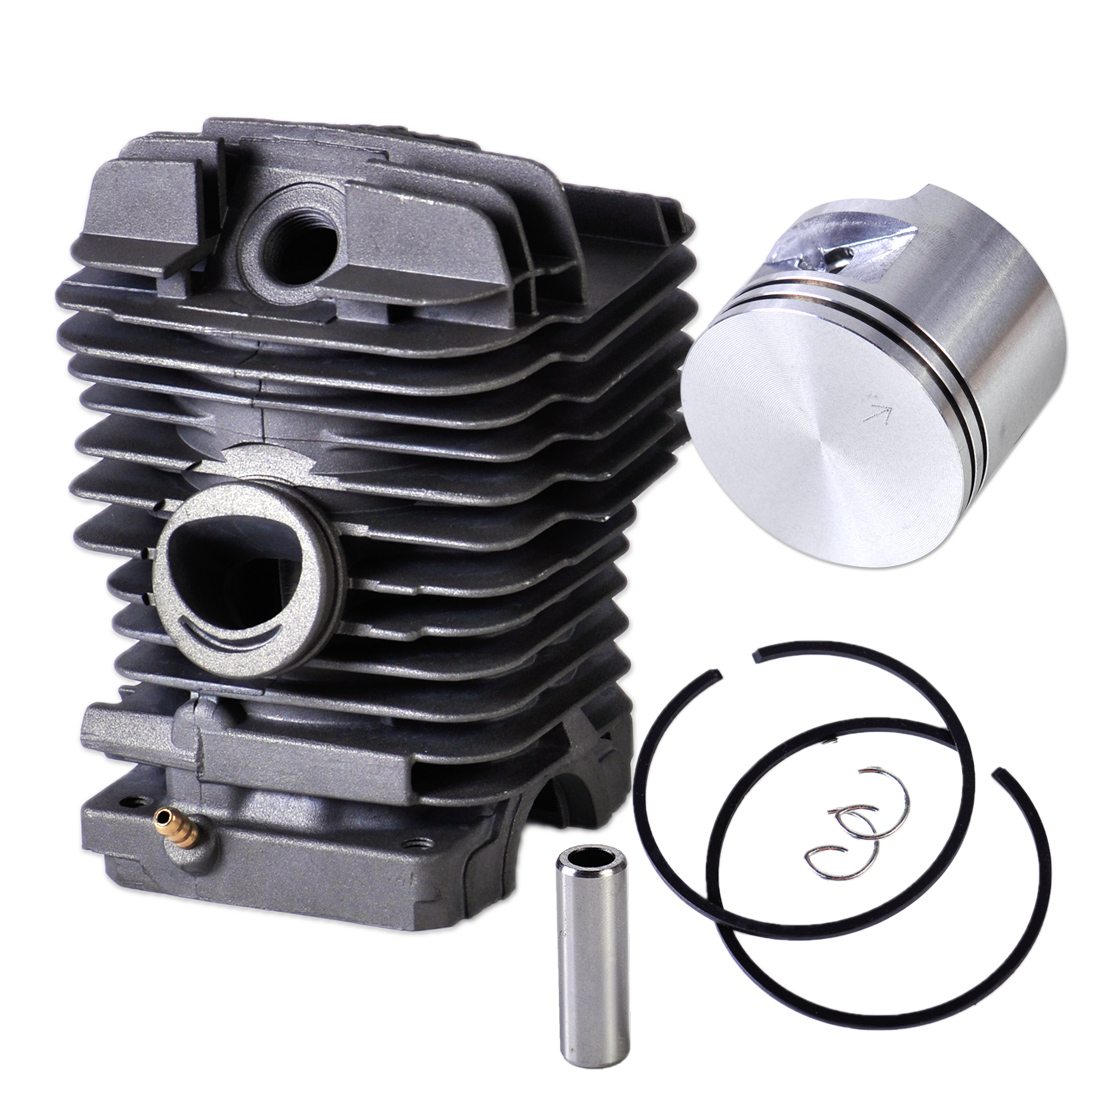 LETAOSK New 49mm Cylinder Piston Kit Fit For Stihl MS390 MS290 MS310 029 039Accessories